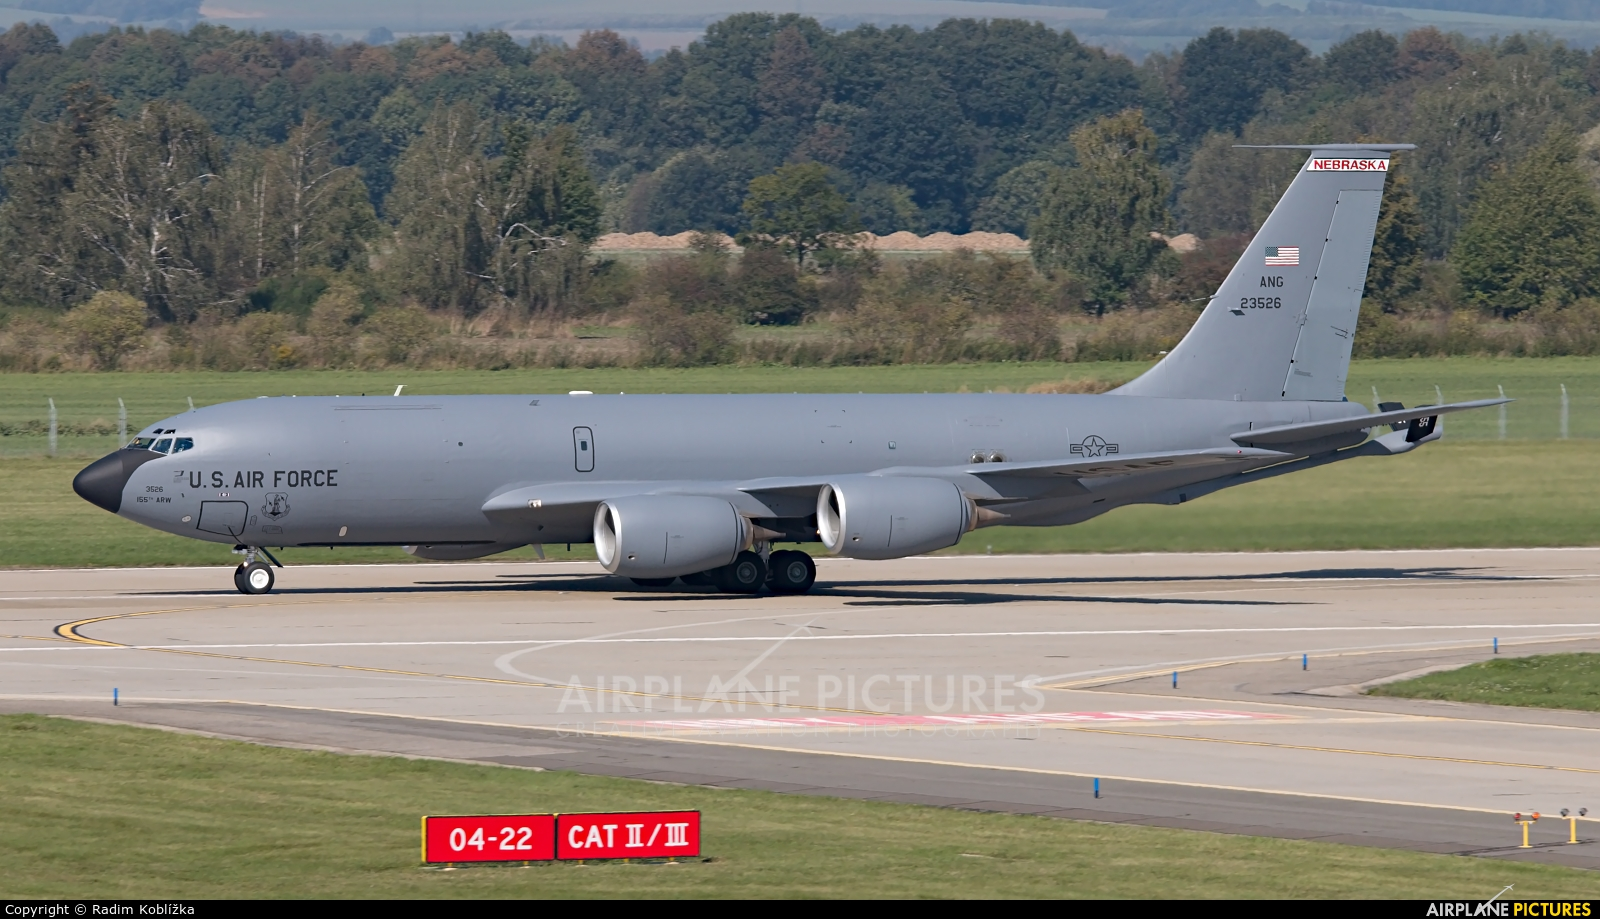 USA - Air Force 62-3526 aircraft at Ostrava Mošnov